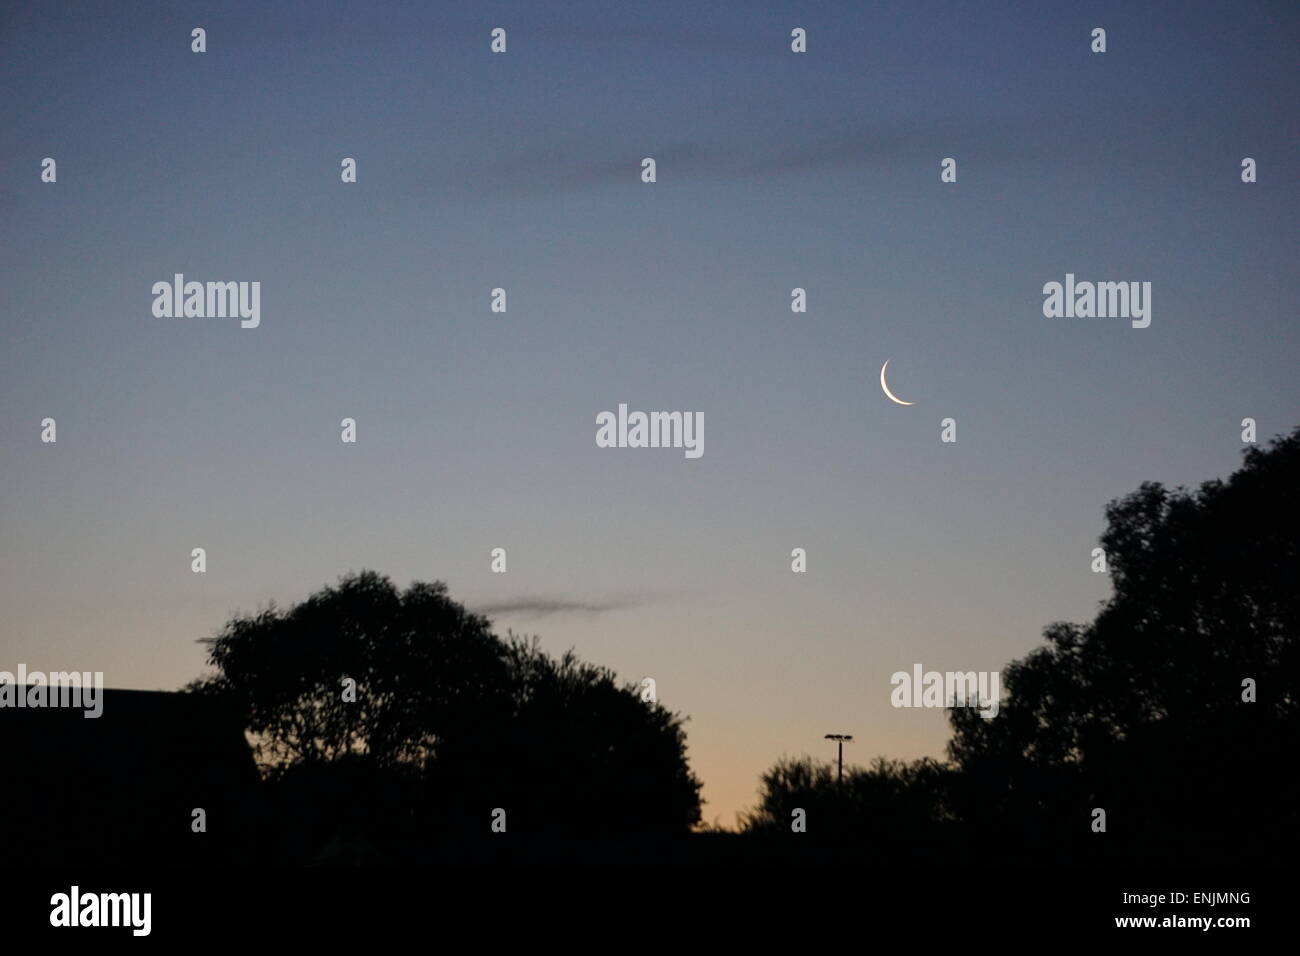 Half moon at dusk over suburban homes. - Stock Image